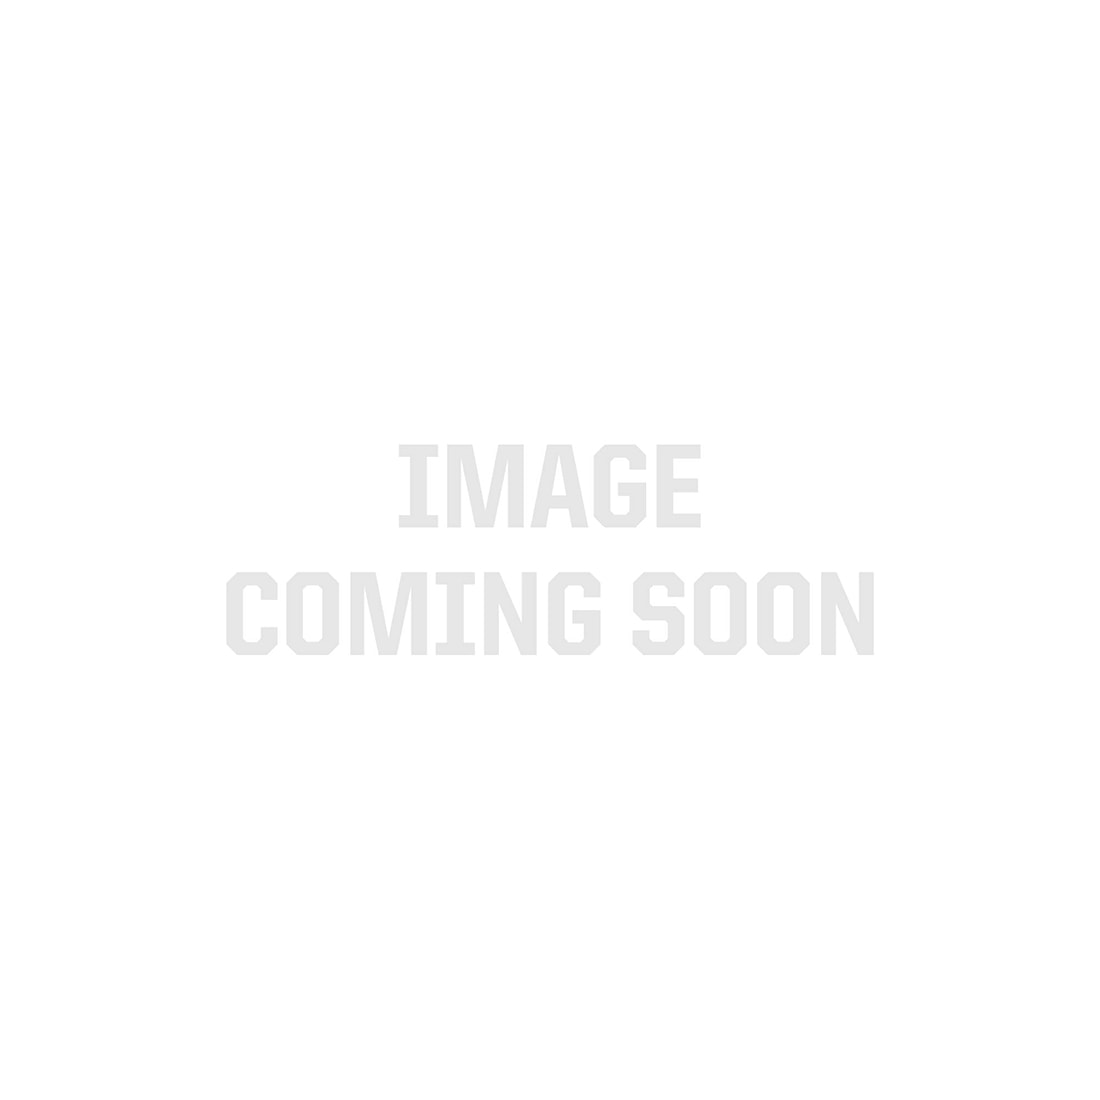 C7 Dimmable LED Christmas Light Bulb, E12 (Candelabra) Base, 0.96 watt (Cool White)